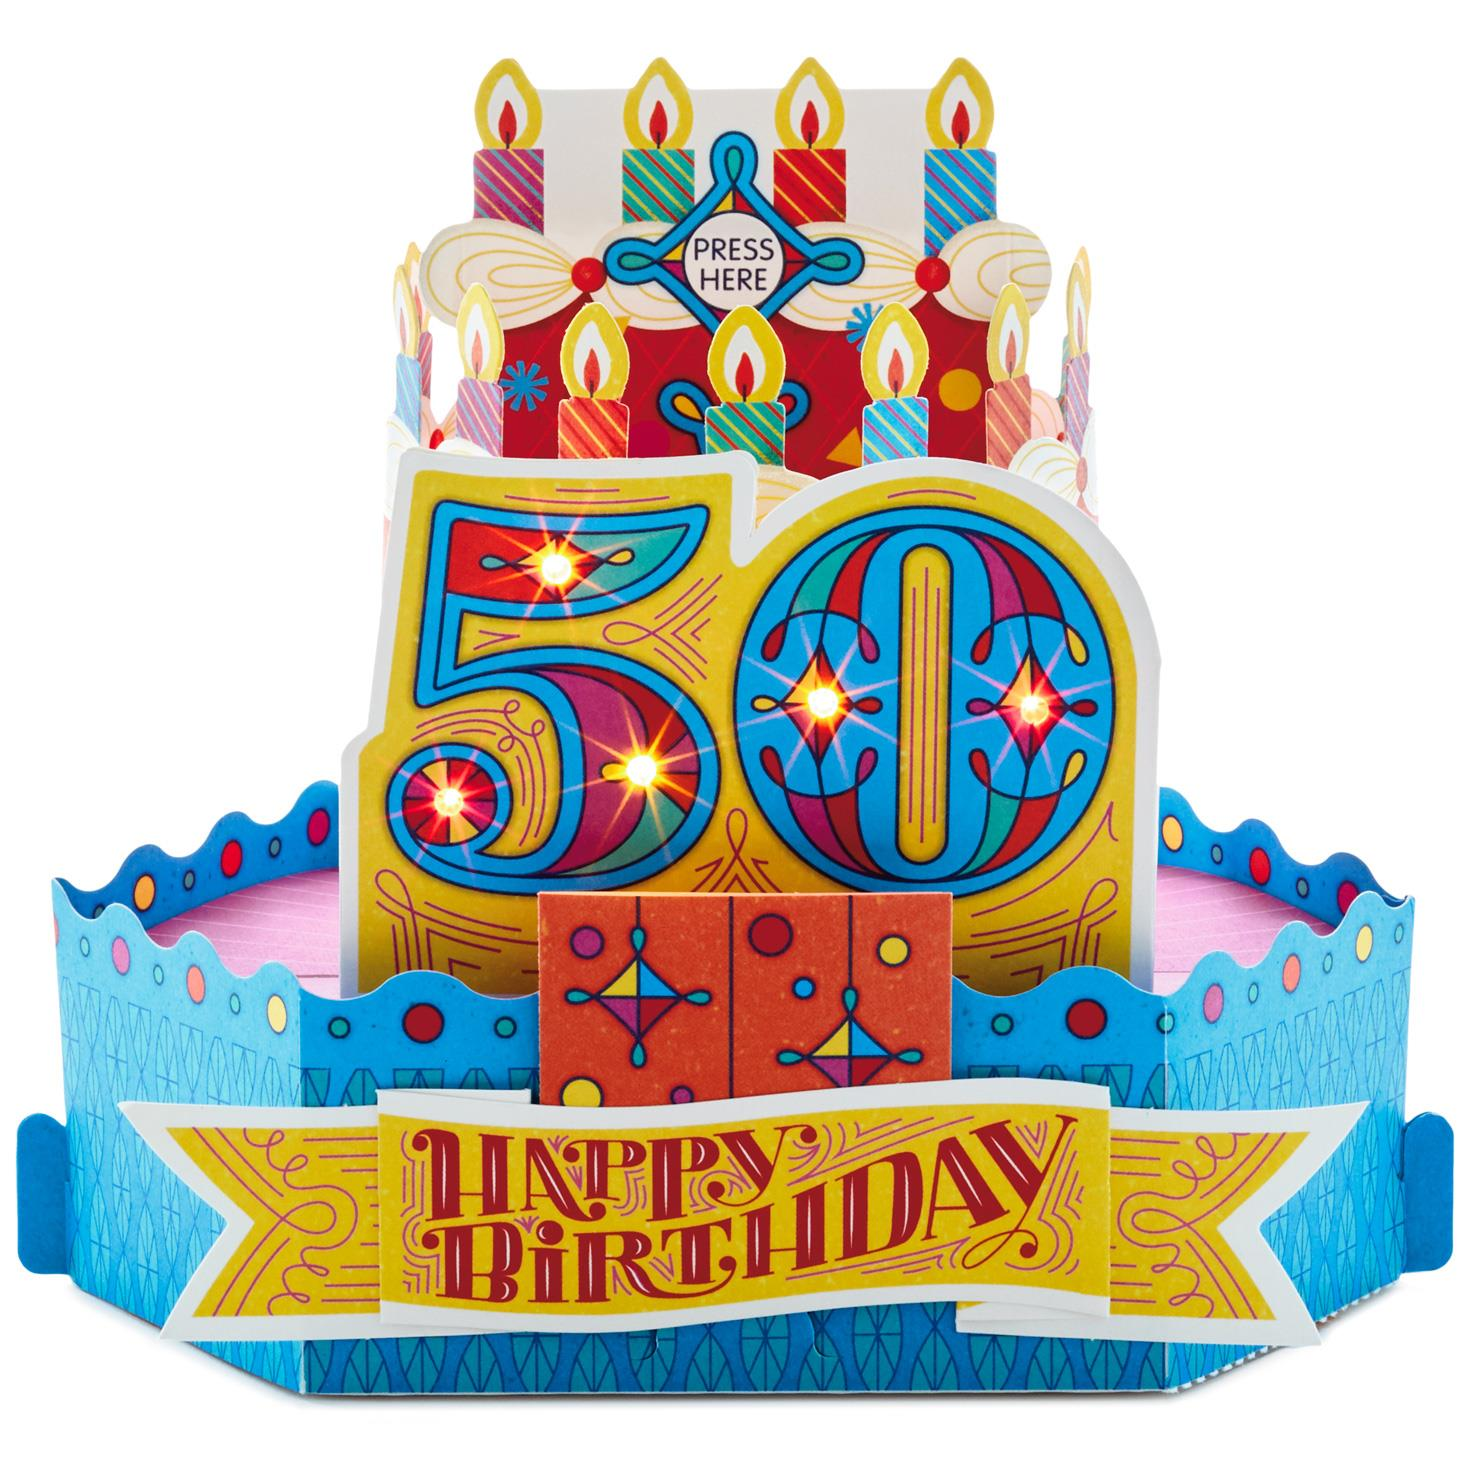 50th Birthday Cake With Candles Pop Up Musical Birthday Card With